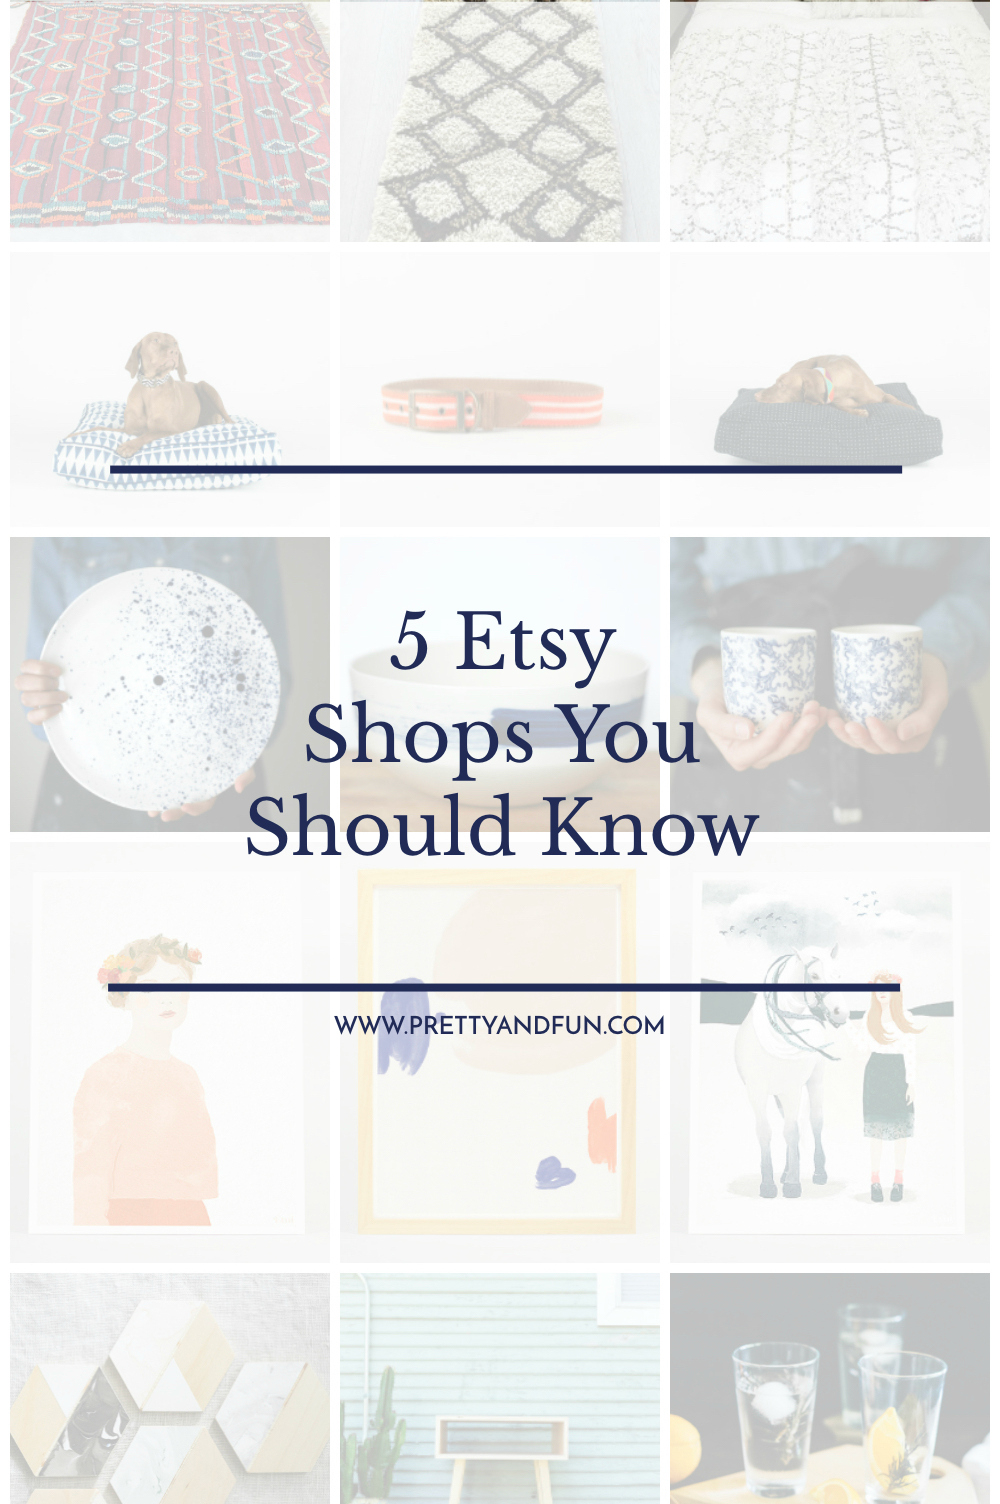 5 New Etsy Shops You Should Know.